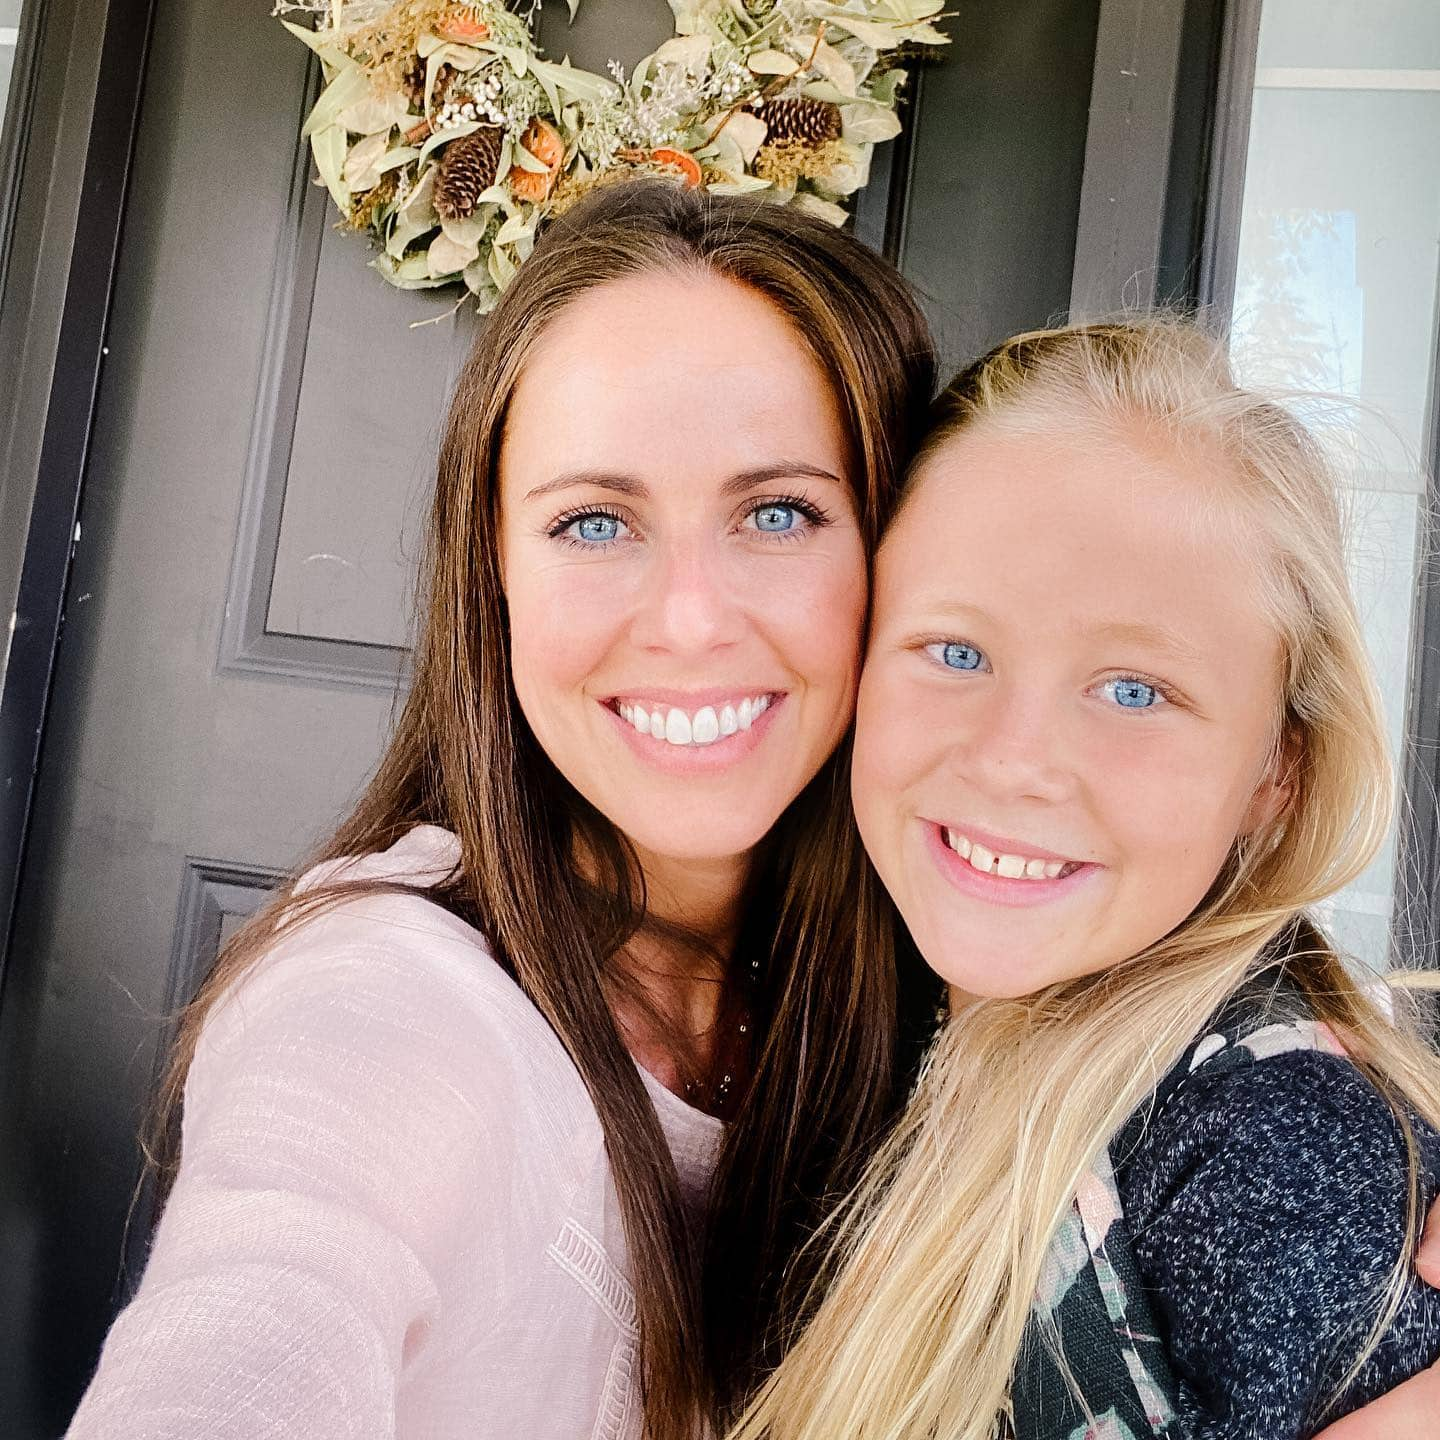 A selfie of a mother and daughter standing outside the front door.